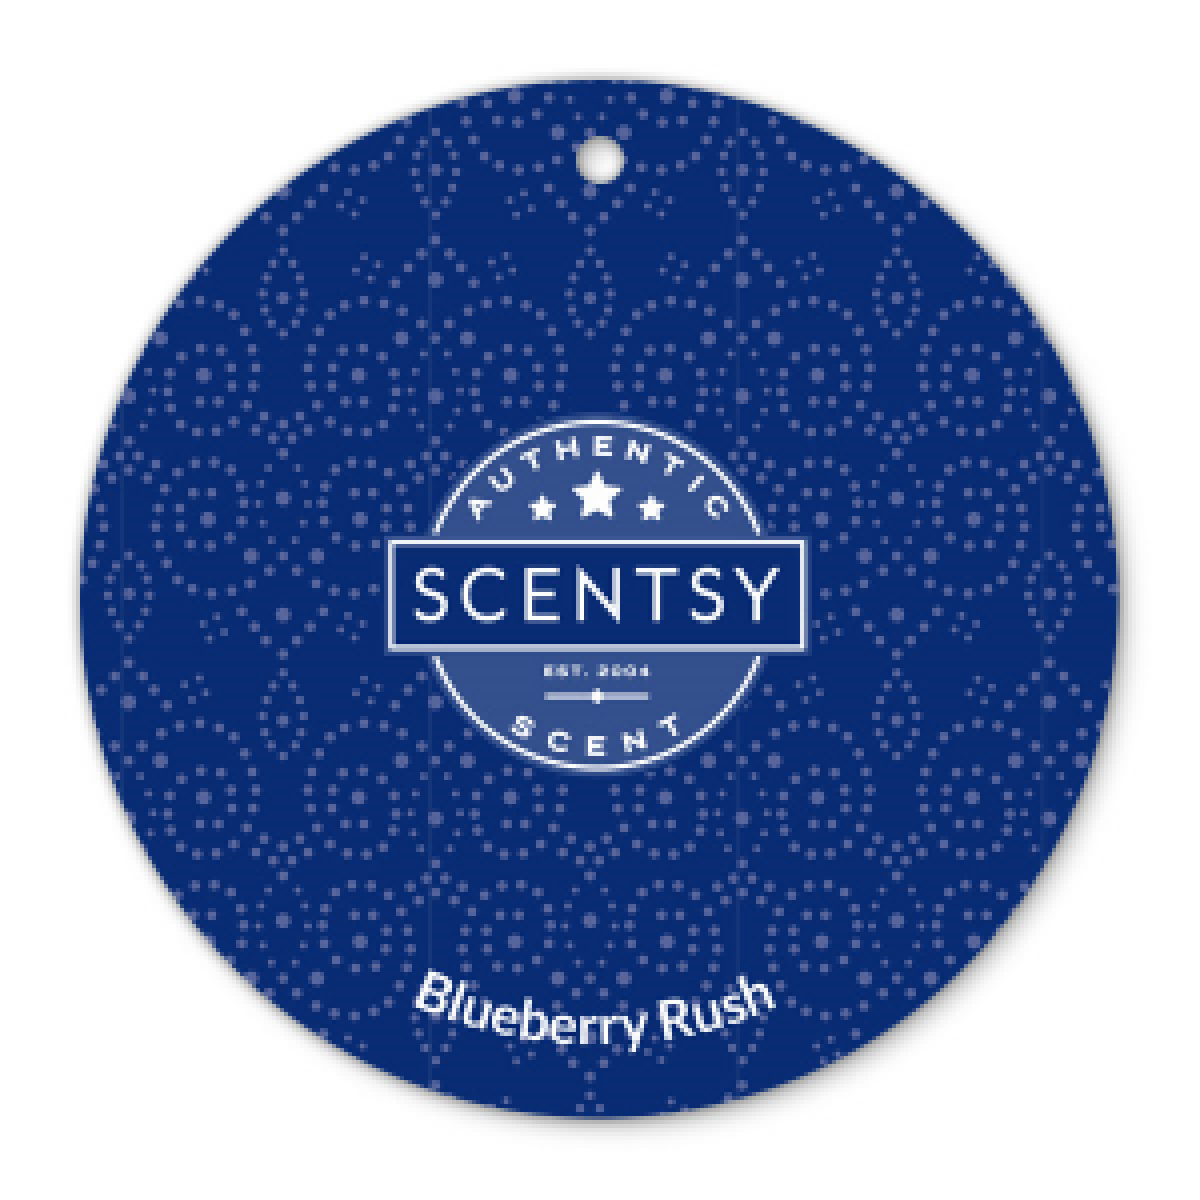 Blueberry Rush Scentsy Scent Circle Car Air Freshner Scentsy Store